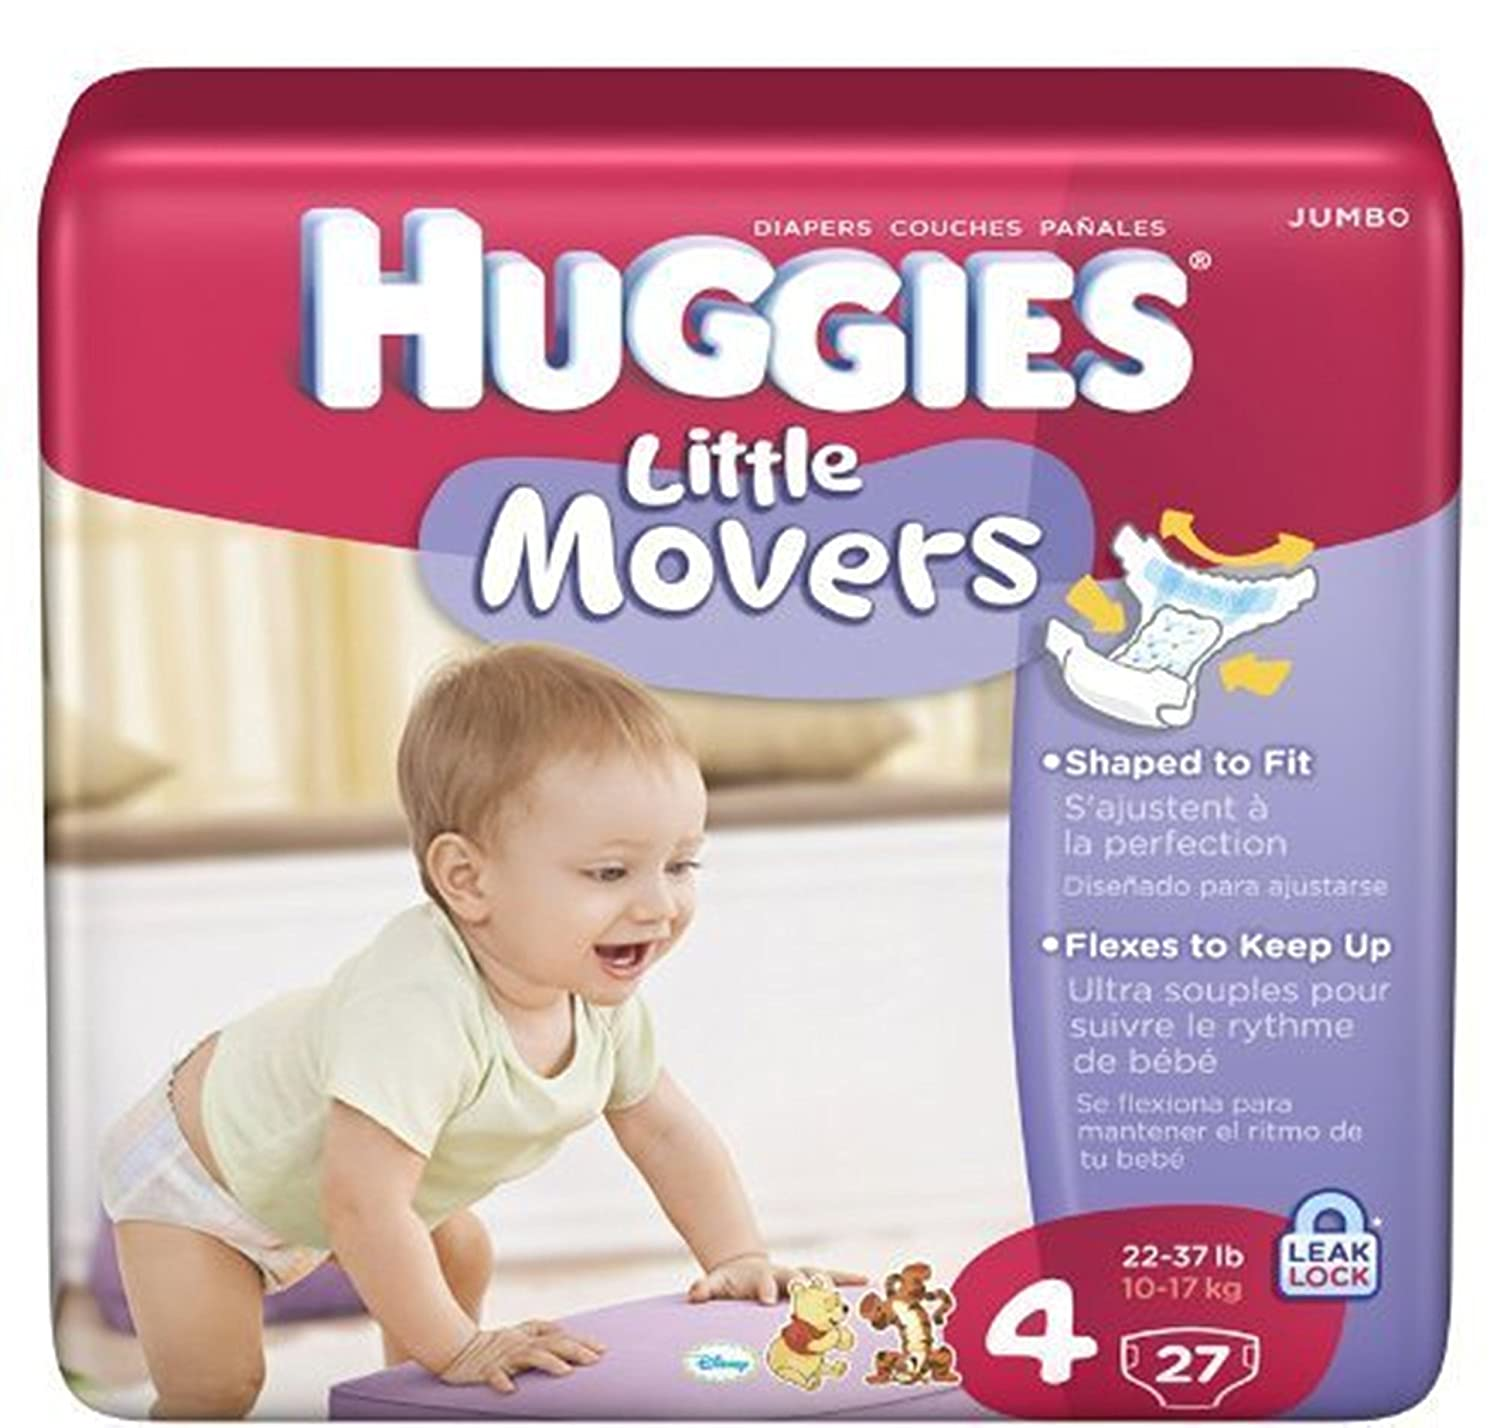 Huggies Diapers Little Movers Supreme Size 4 Jumbo Pack 27 Count: Amazon.com: Grocery & Gourmet Food